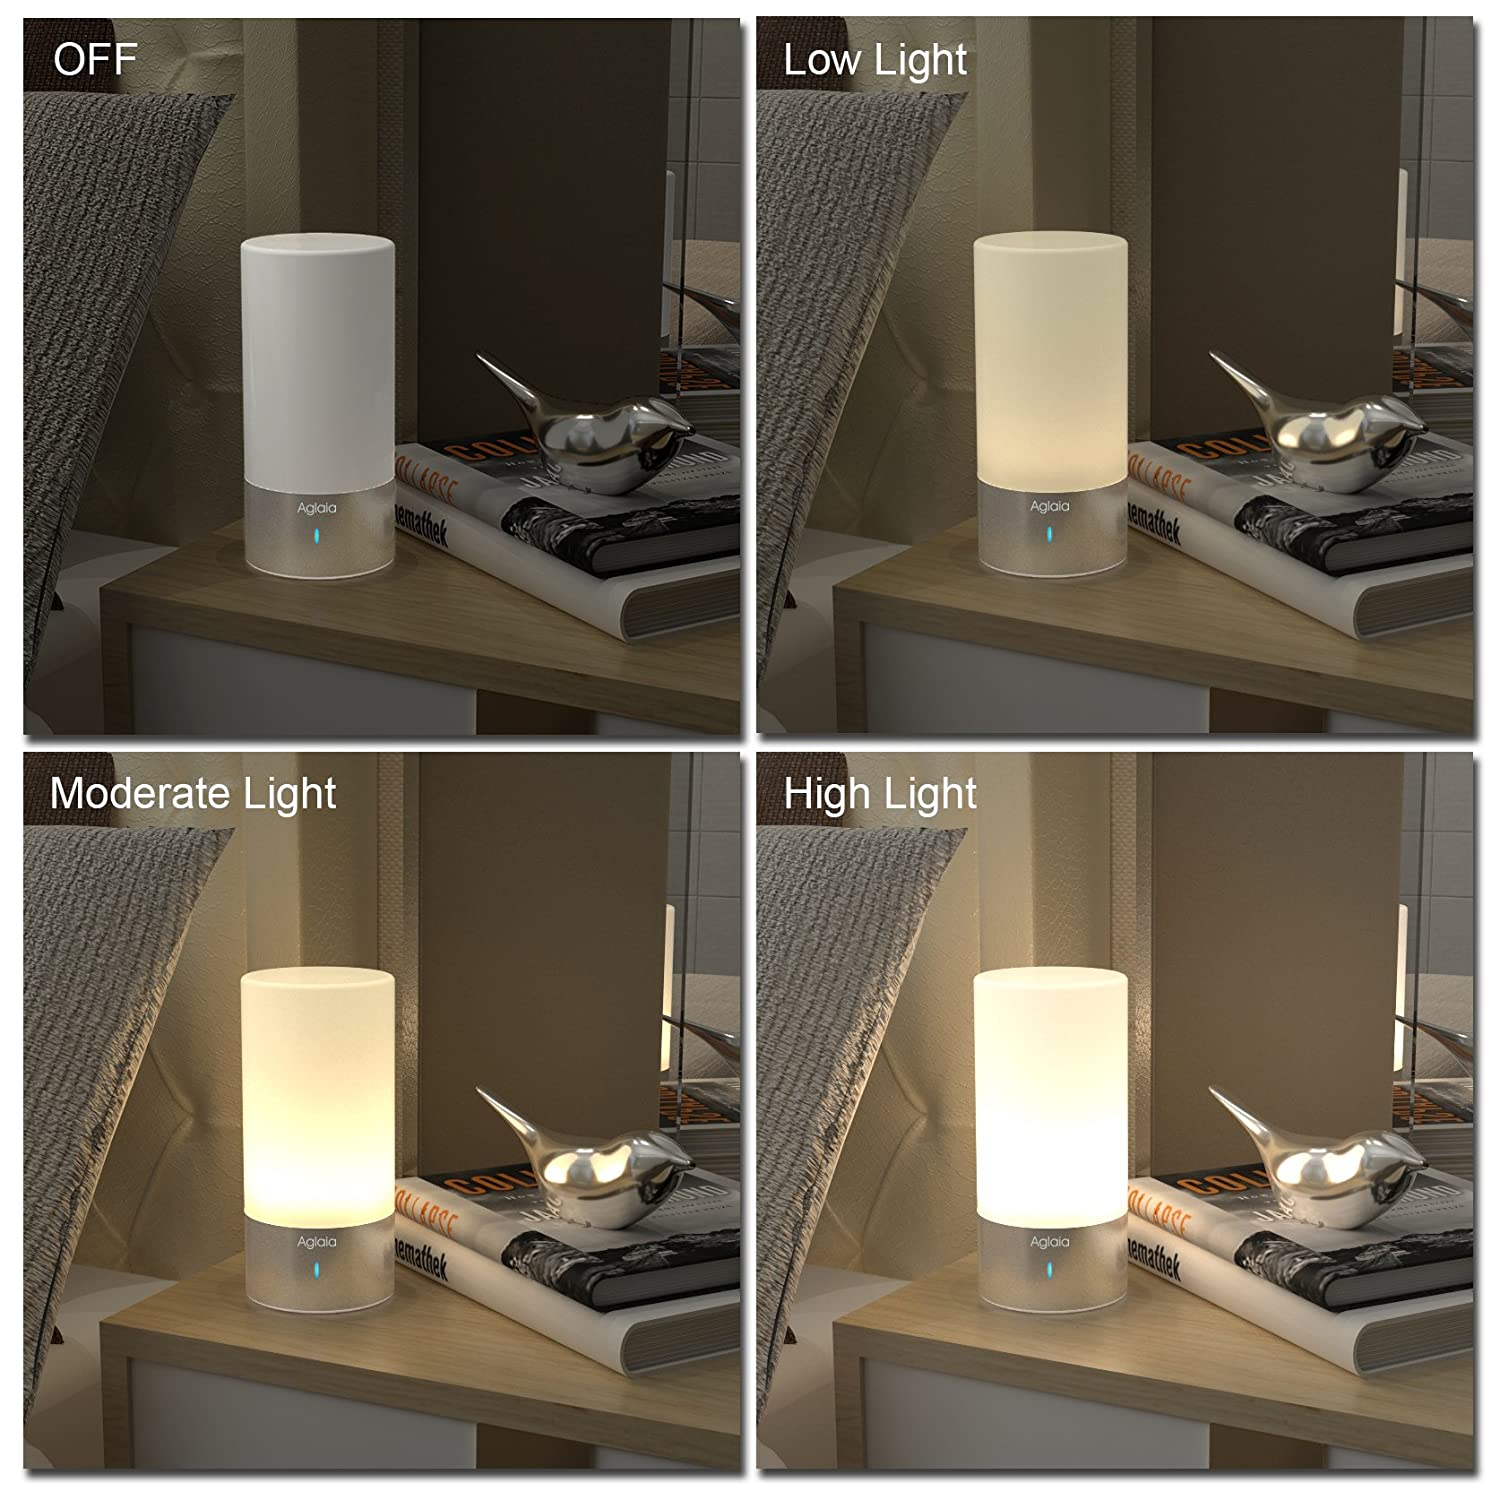 Aglaia table lamp touch sensor bedside lamp dimmable amazon aglaia table lamp touch sensor bedside lamp dimmable amazon electronics aloadofball Images